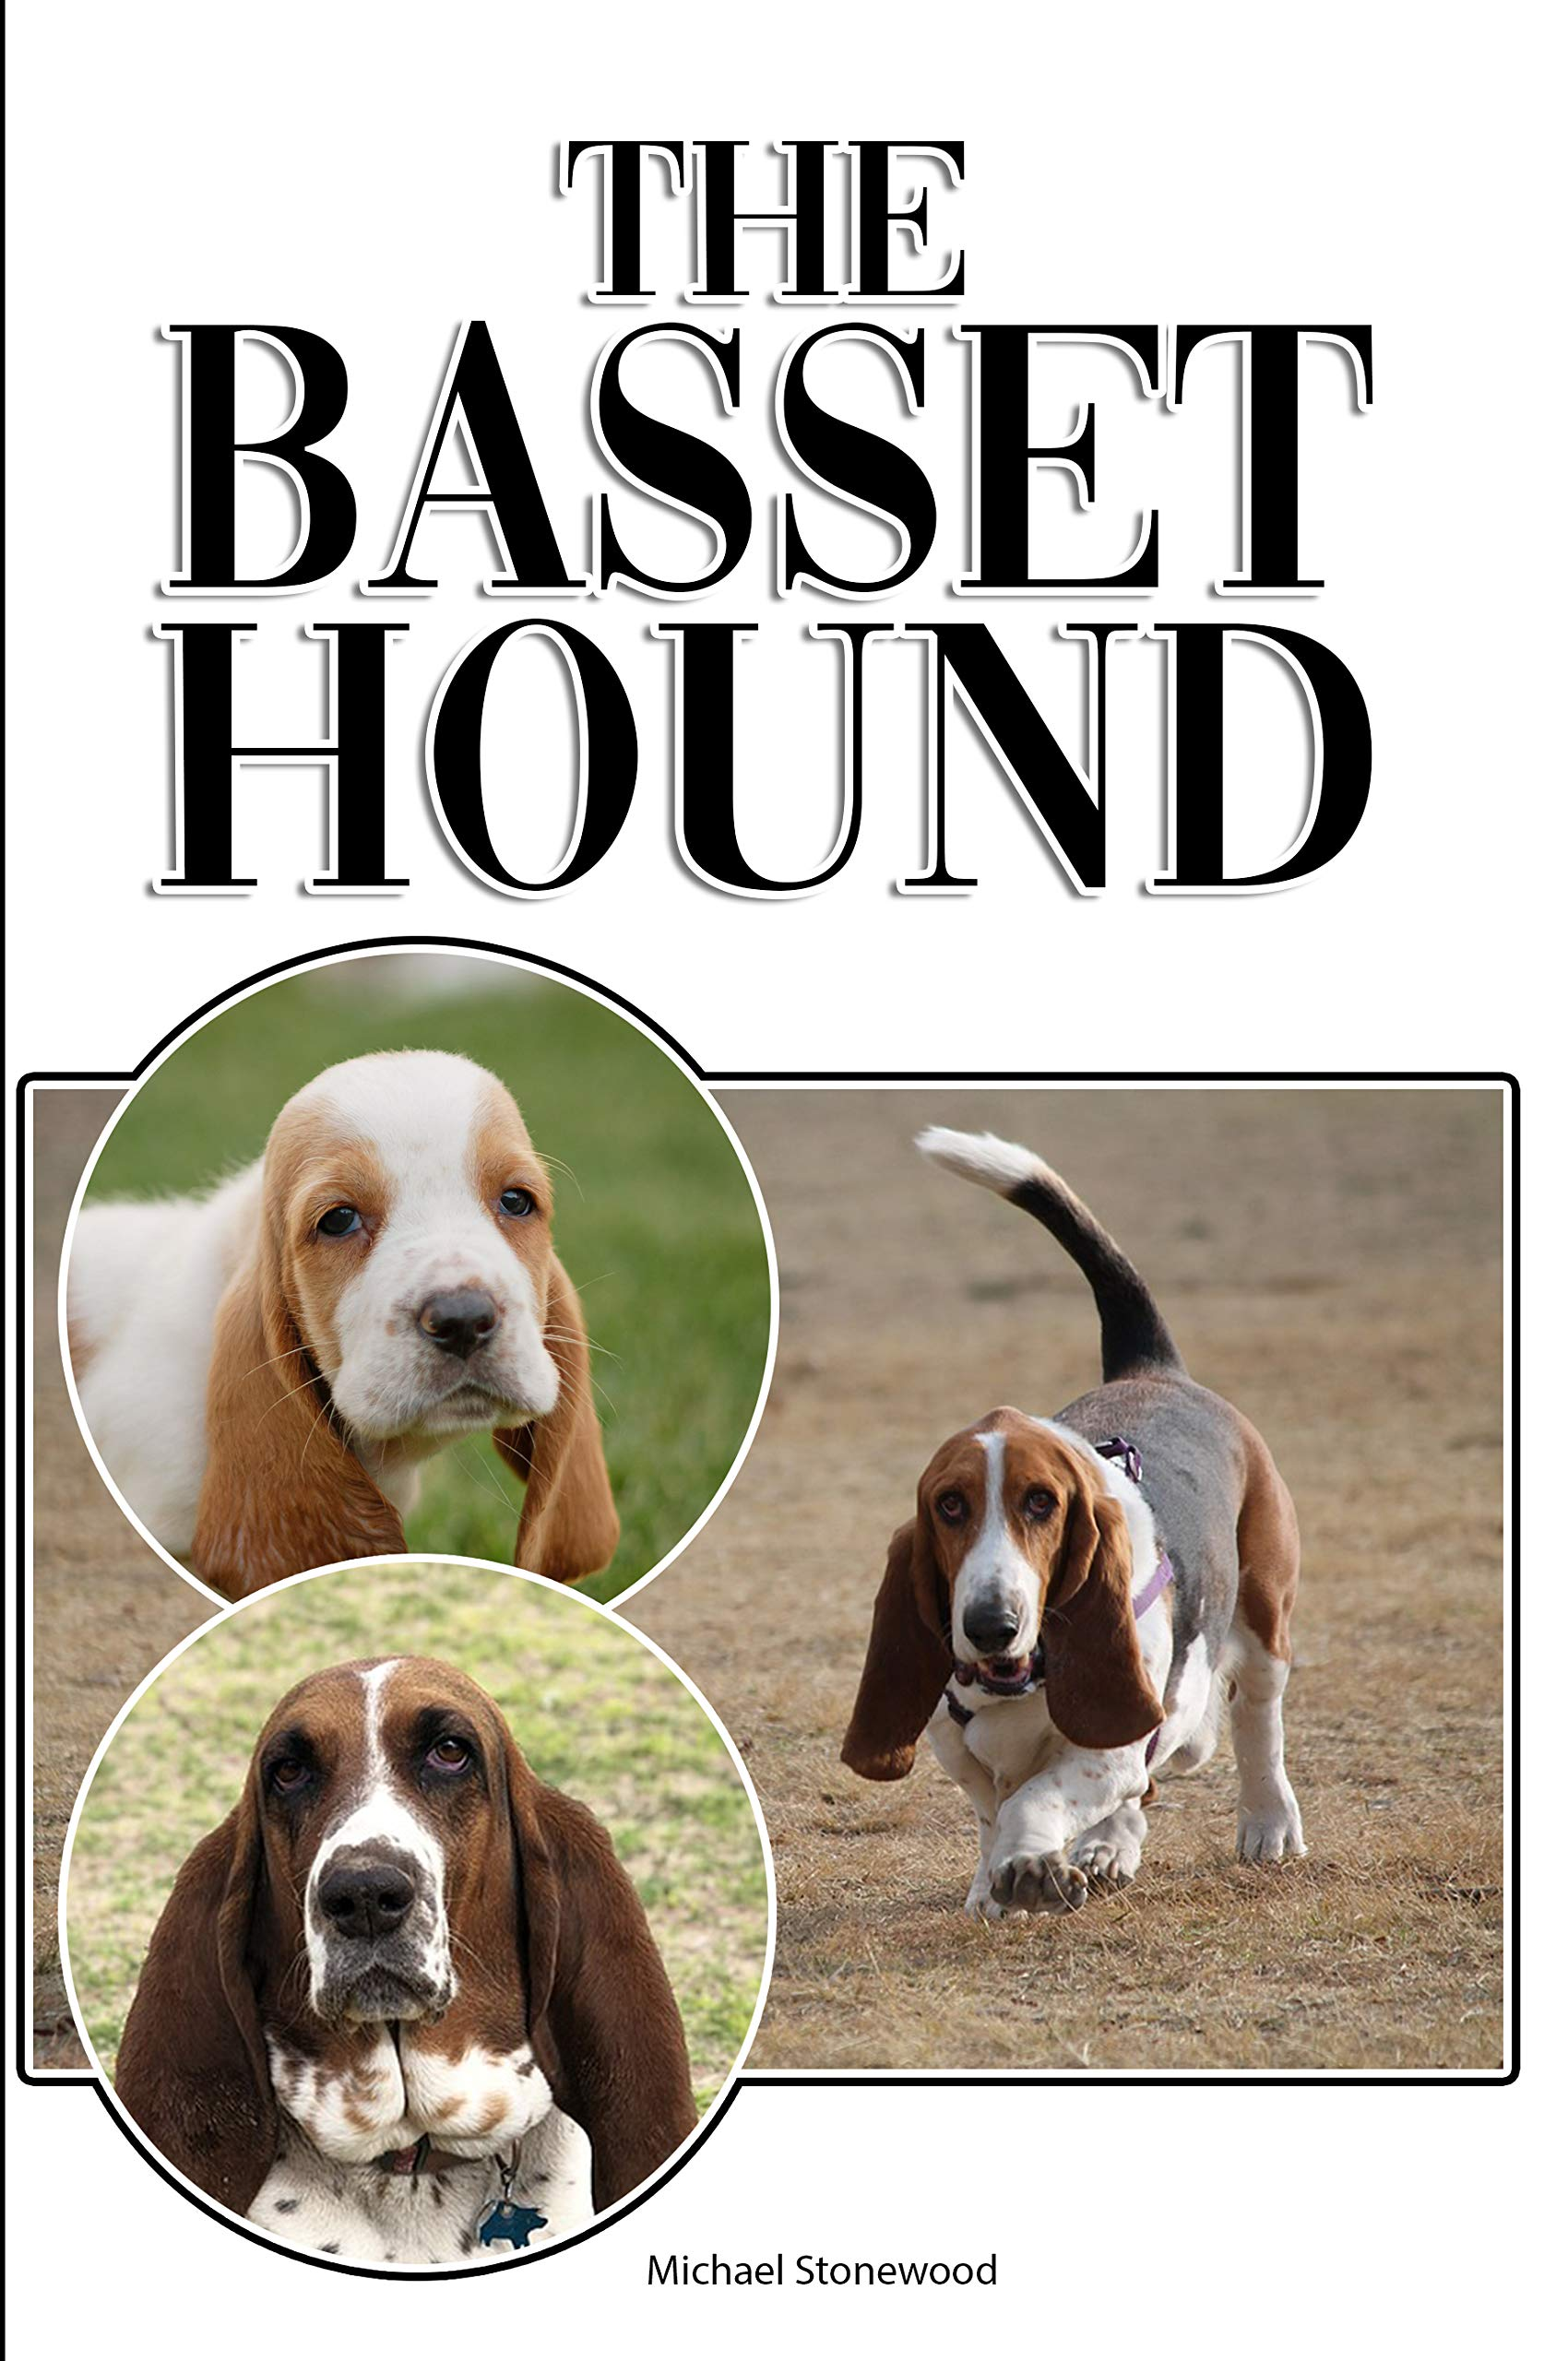 The Basset Hound: A Complete and Comprehensive Beginners Guide to: Buying, Owning, Health, Grooming, Training, Obedience…